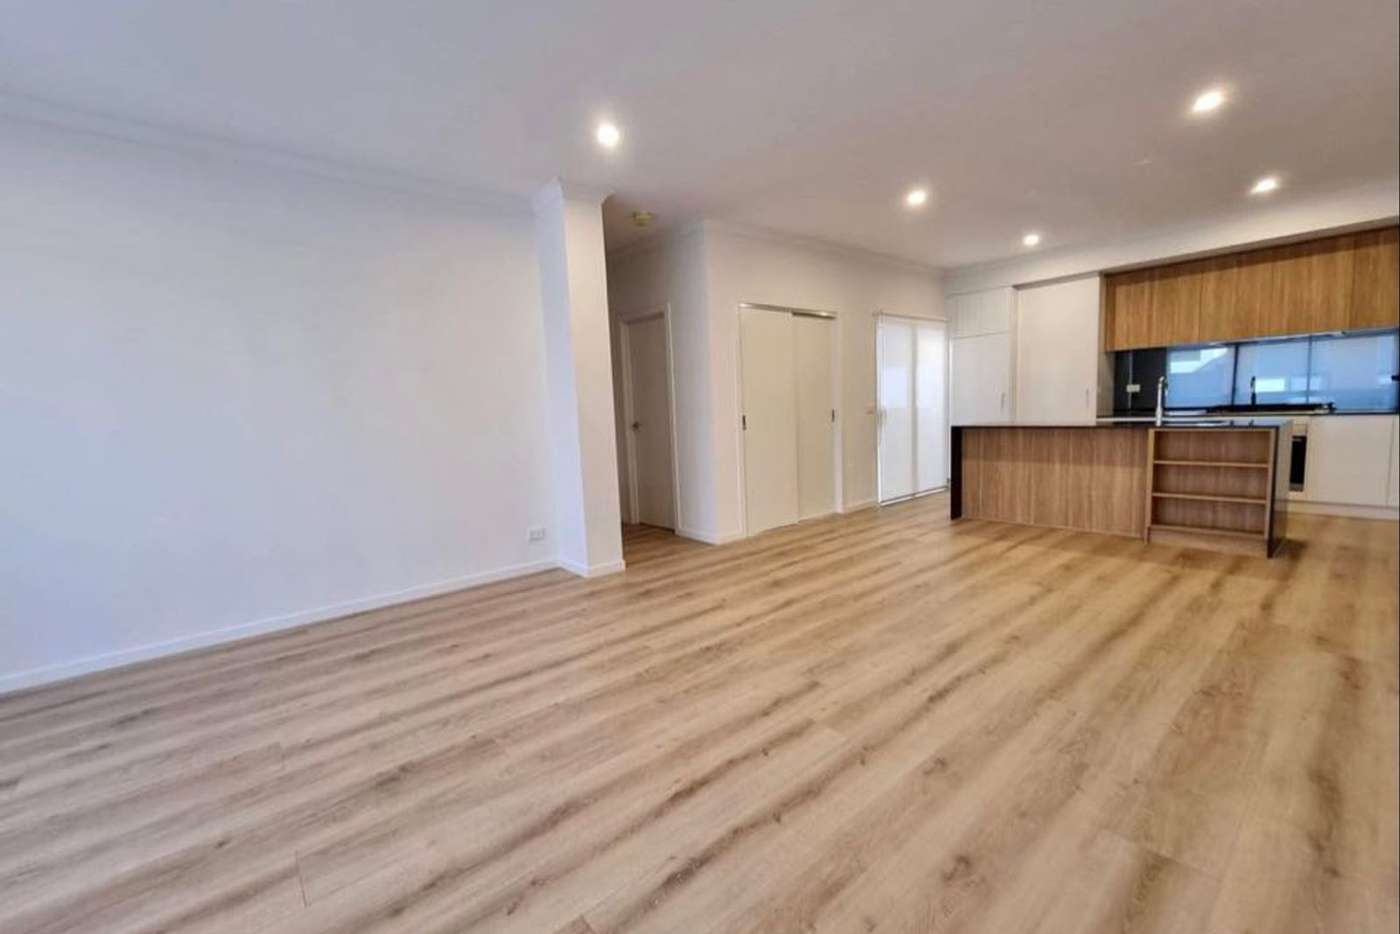 Main view of Homely townhouse listing, 30 Kavanagh Crescent, Keilor Downs VIC 3038